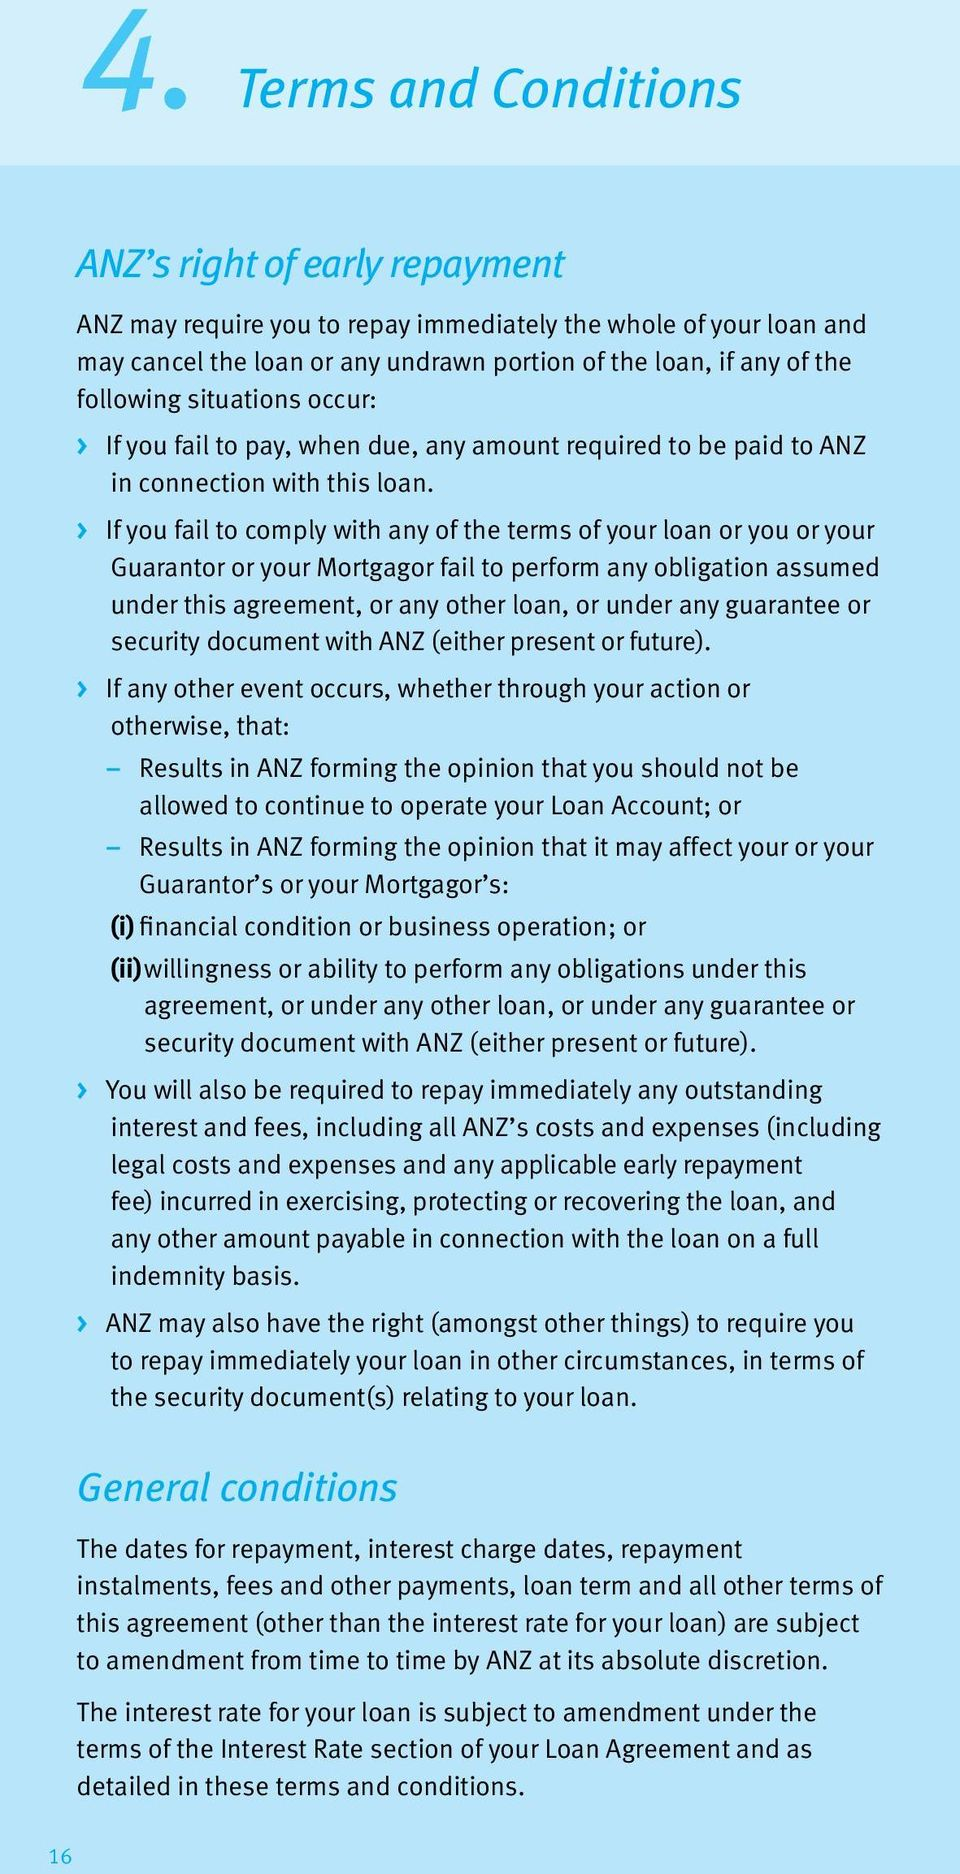 > If you fail to comply with any of the terms of your loan or you or your Guarantor or your Mortgagor fail to perform any obligation assumed under this agreement, or any other loan, or under any